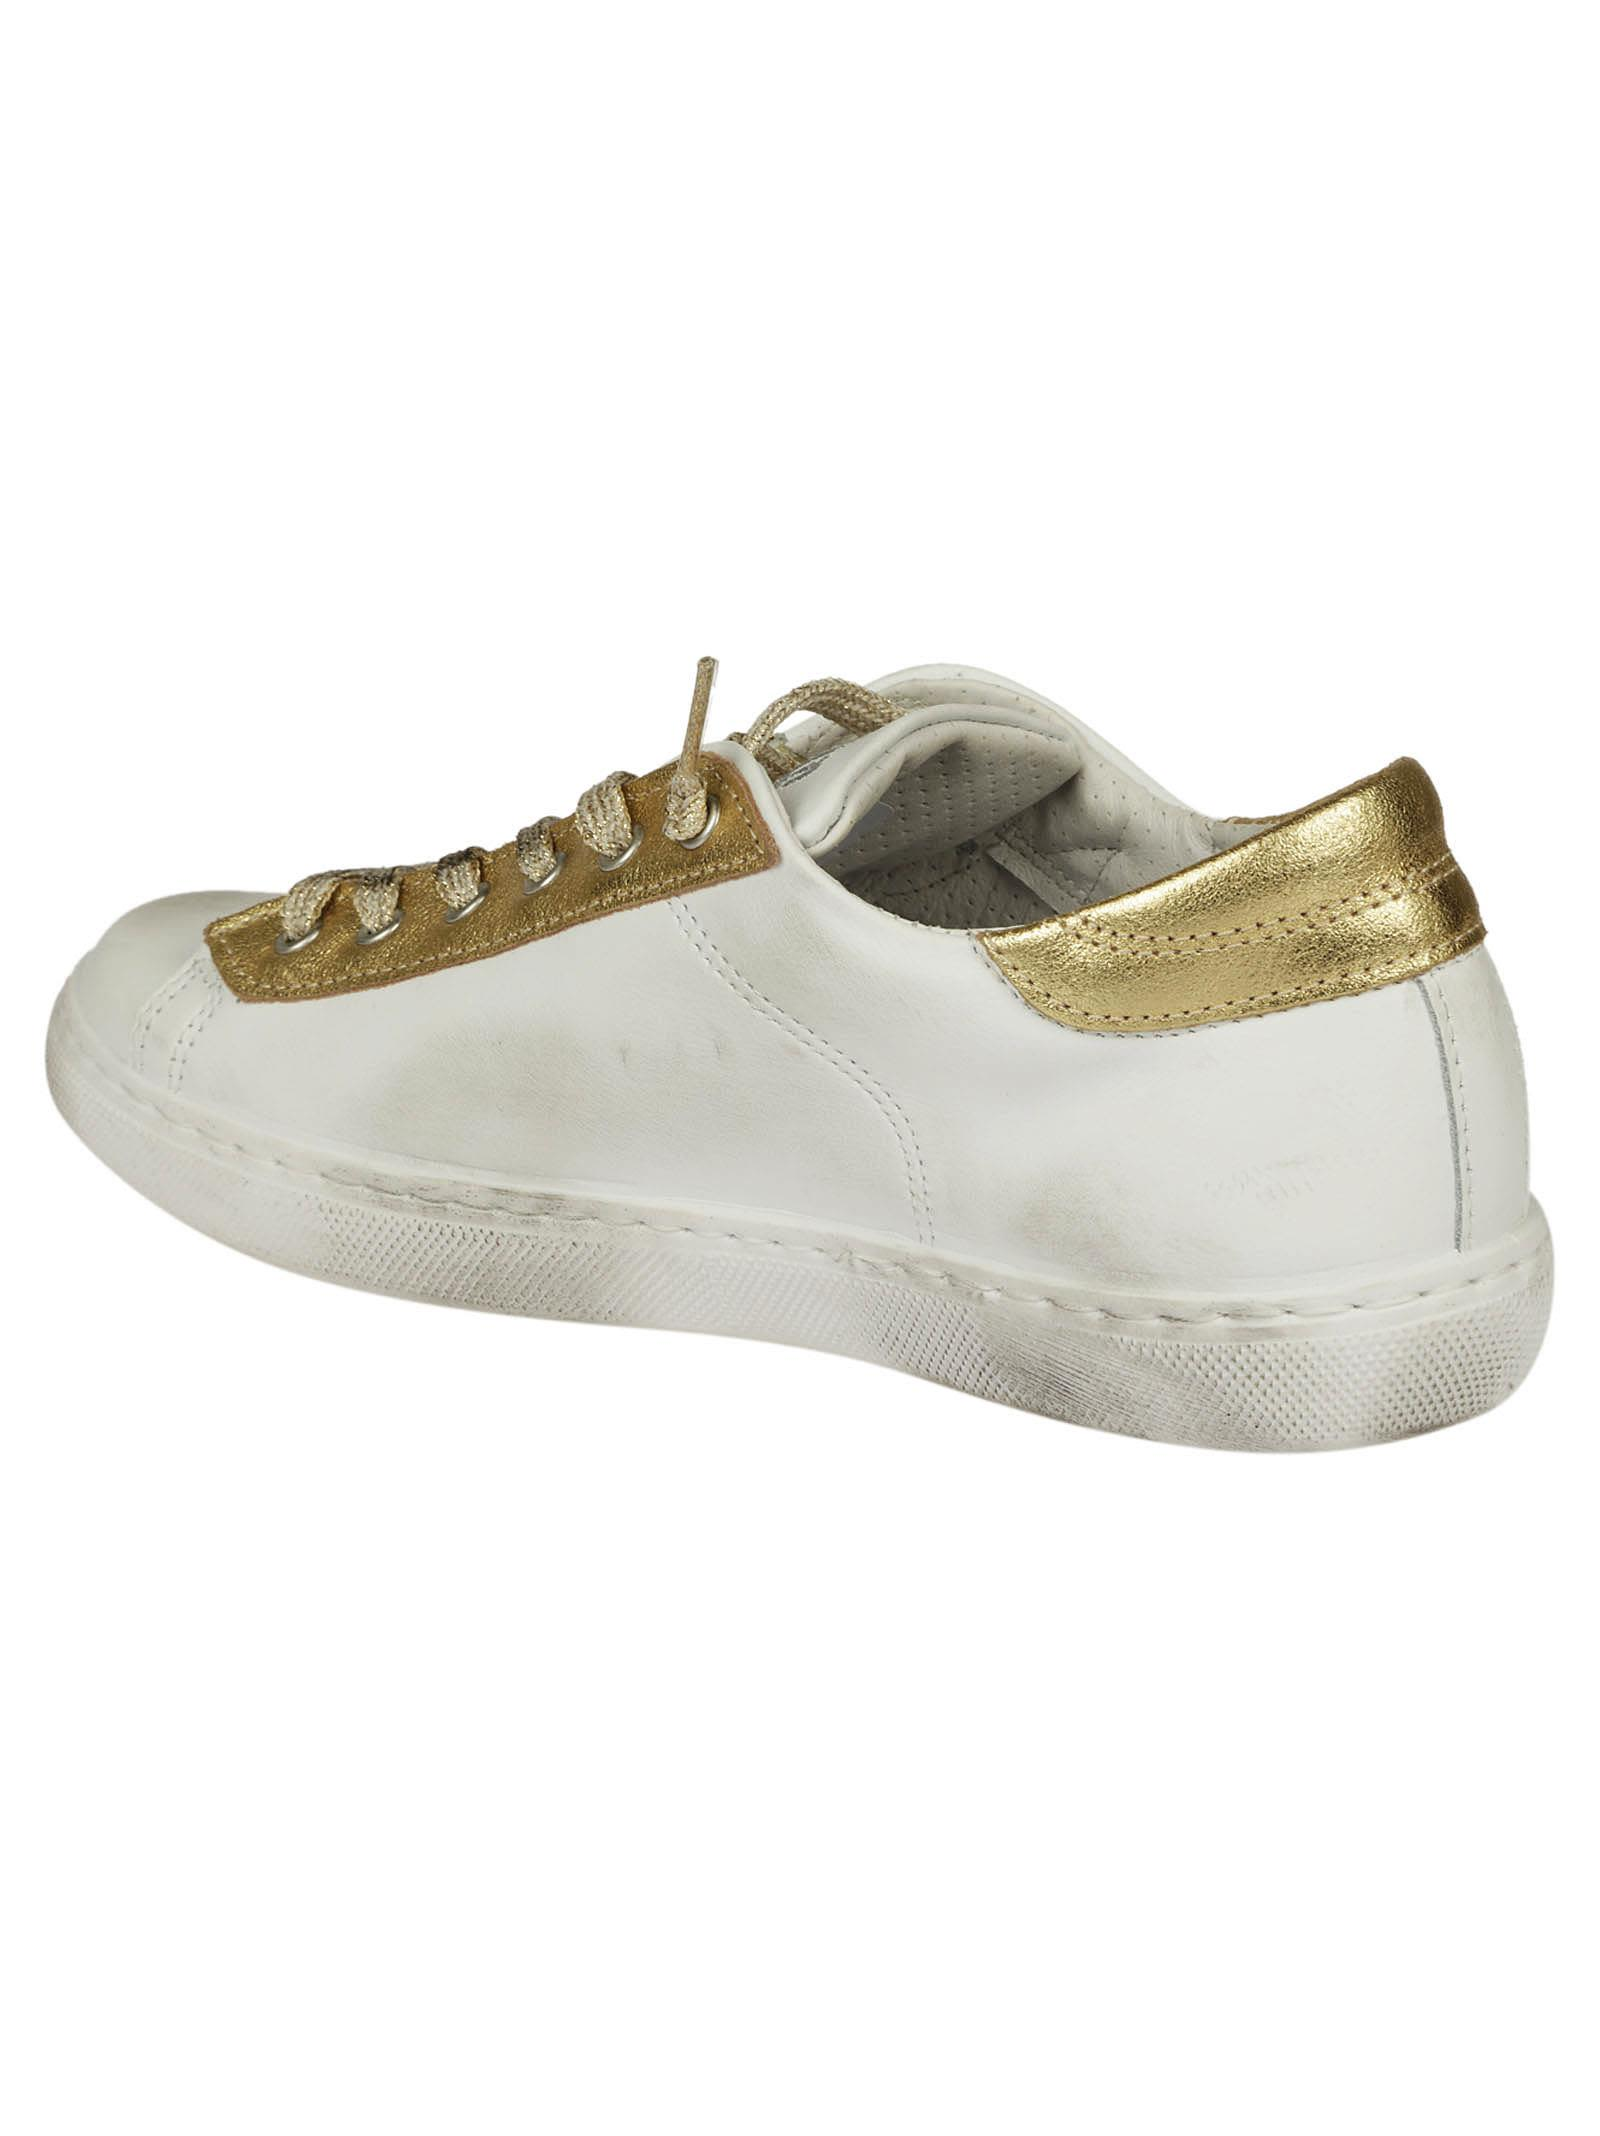 FOOTWEAR - Lace-up shoes 2Star 8AaOB